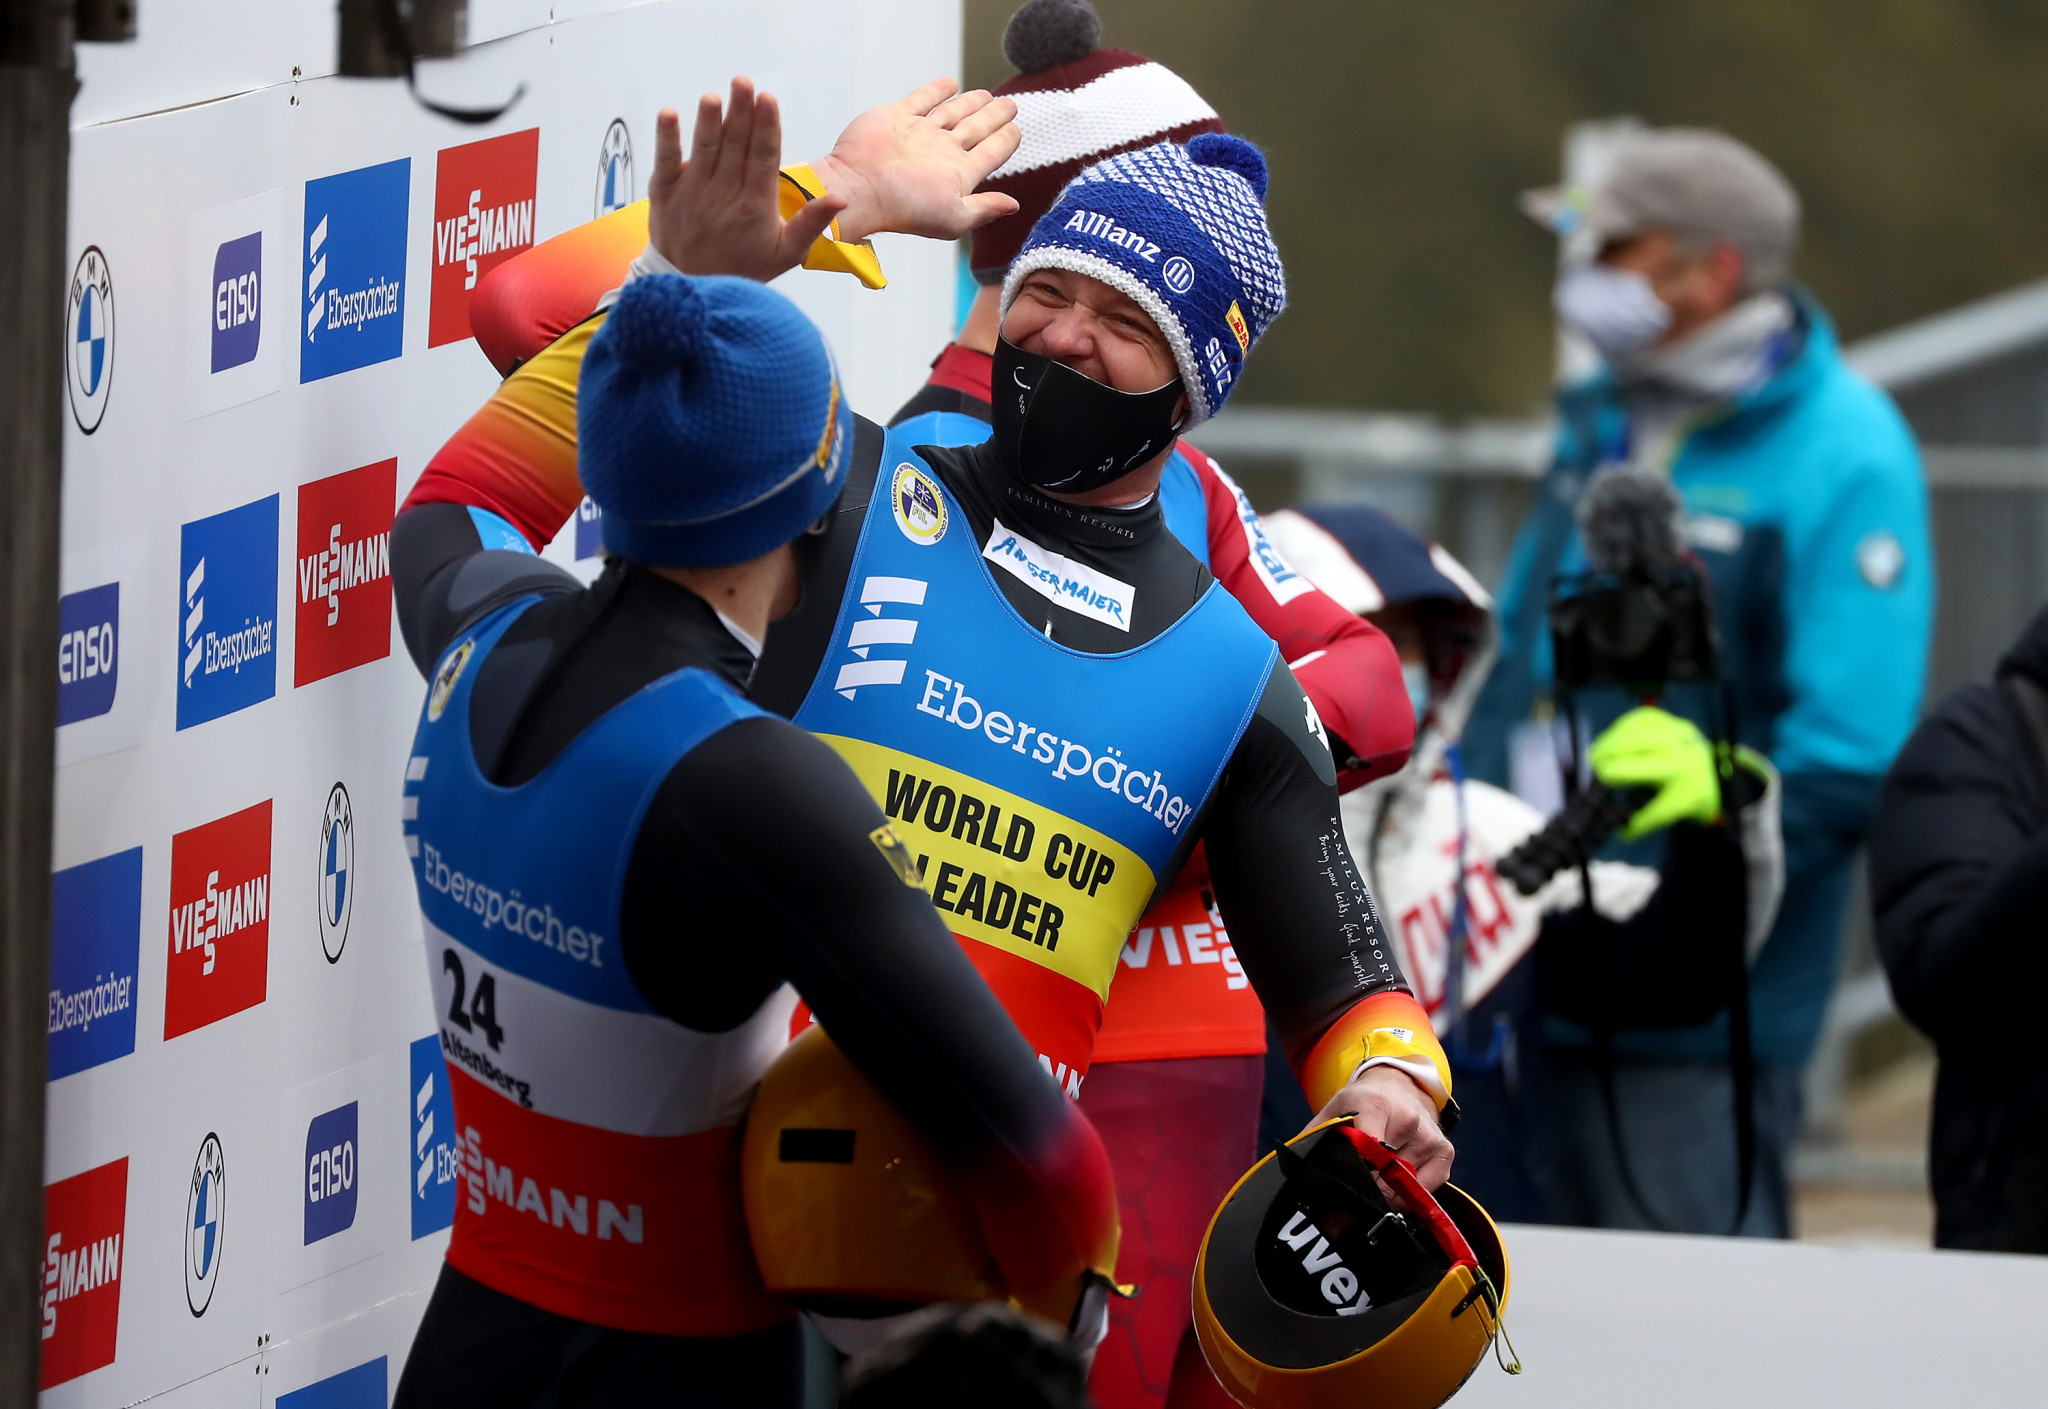 Germany's Felix Loch and Max Langenhan finished first and second at the FIL Luge World Cup in Altenberg ©Getty Images